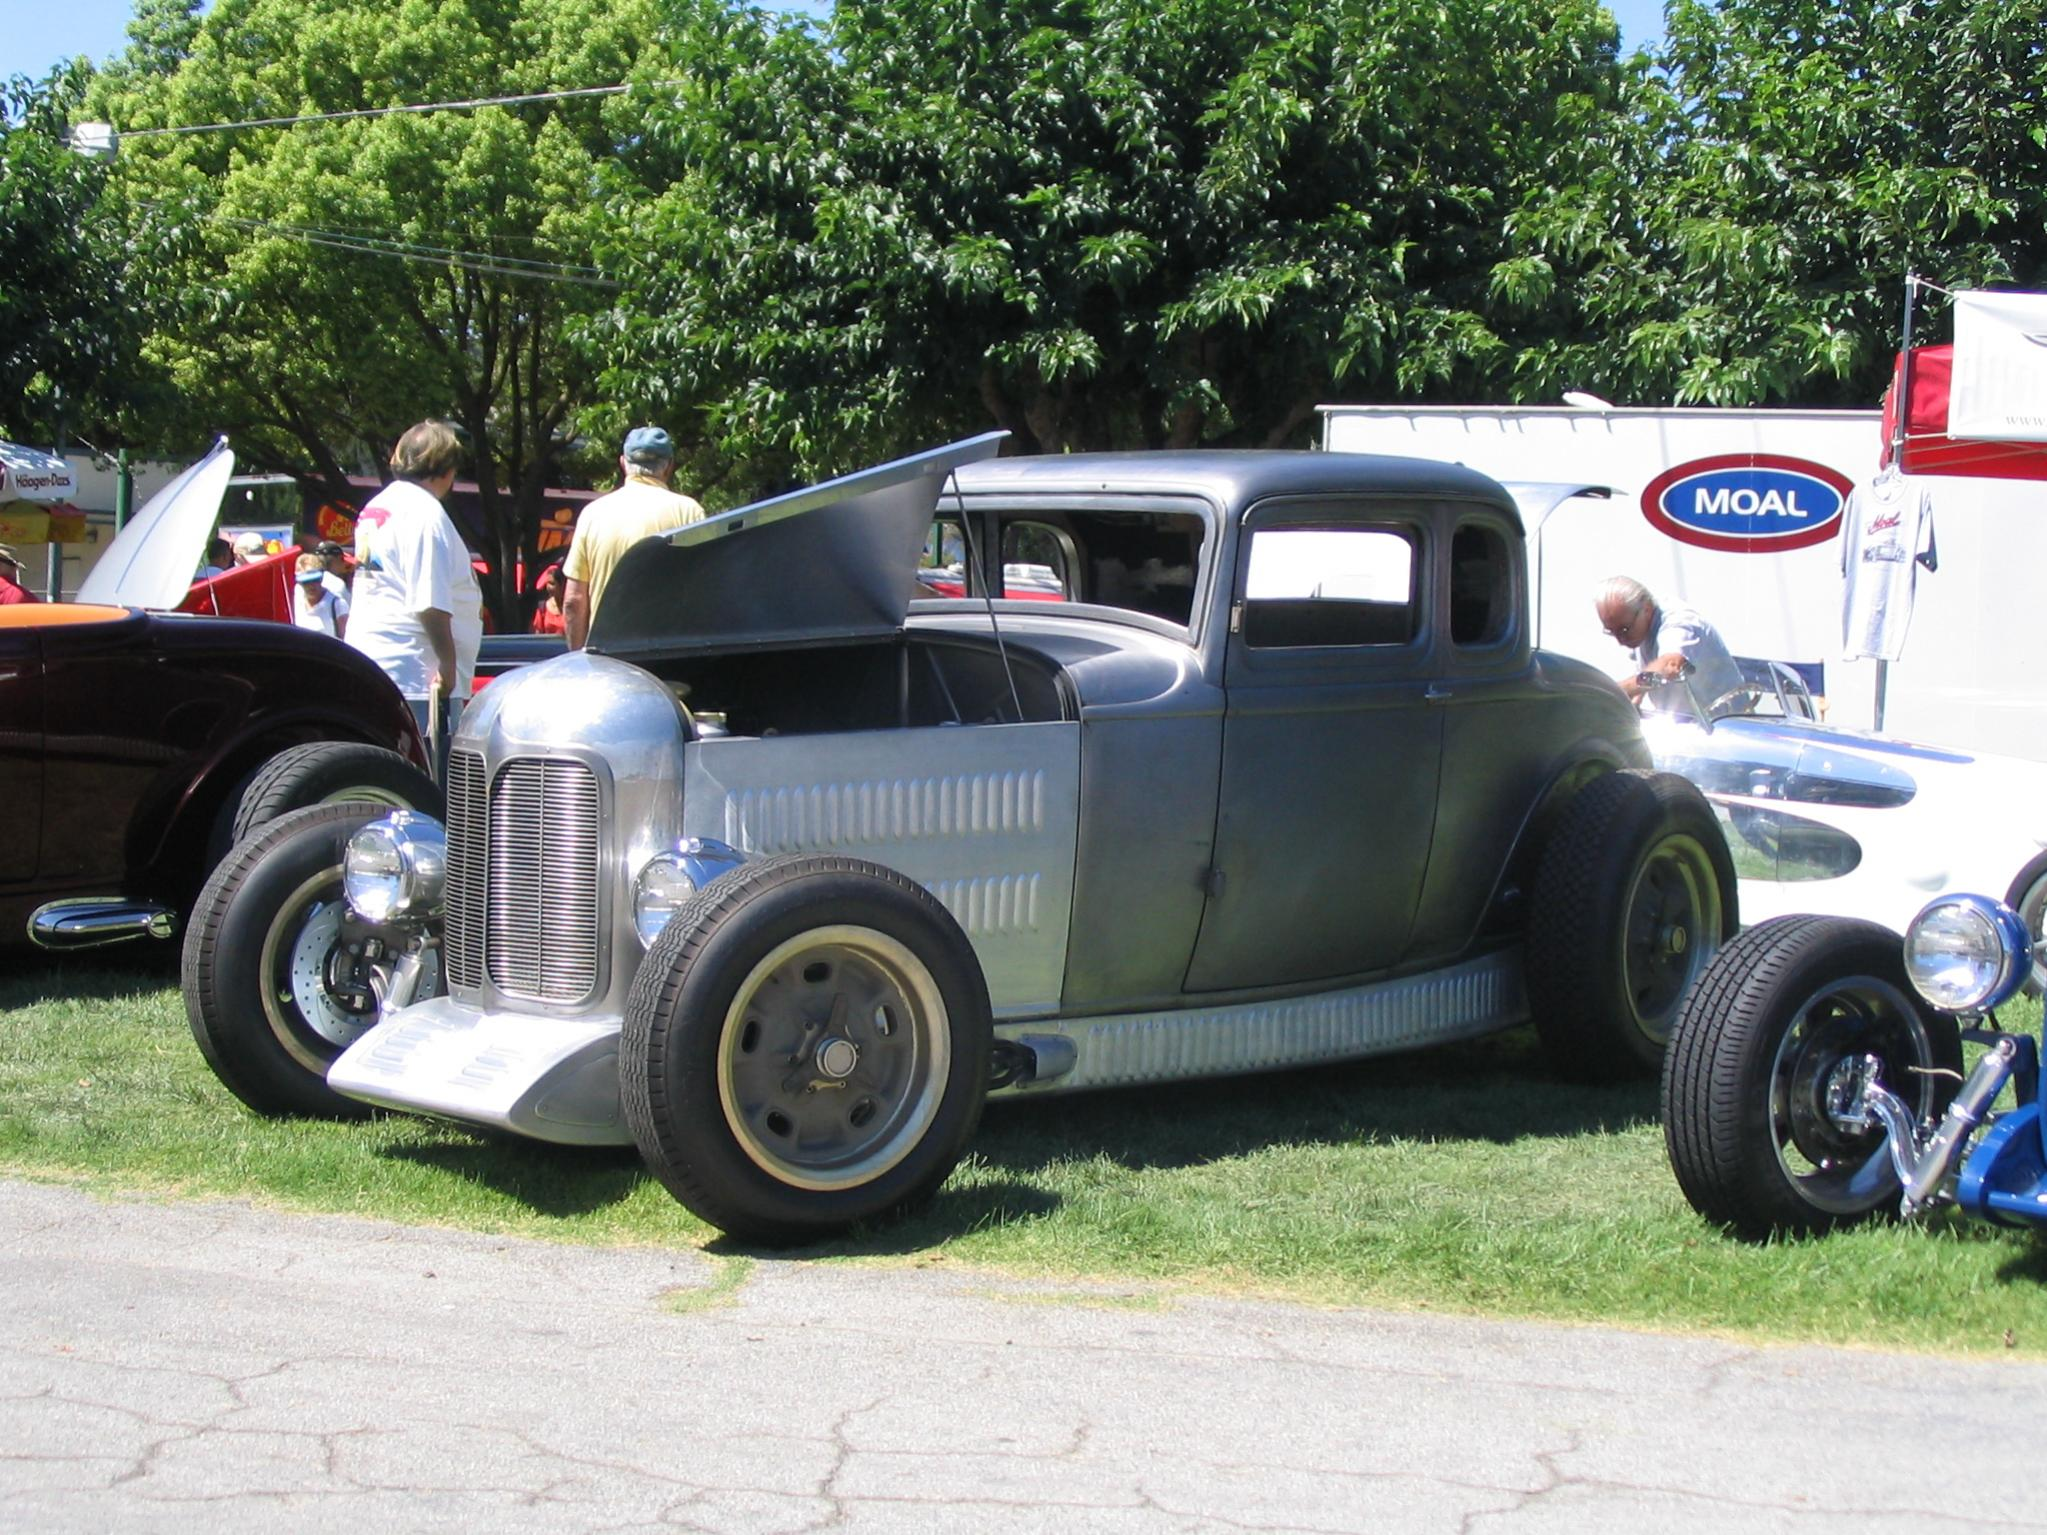 Poteet Roadchamp '32 5wd (by Moal Coachbuilders) GG WCN '06.jpg